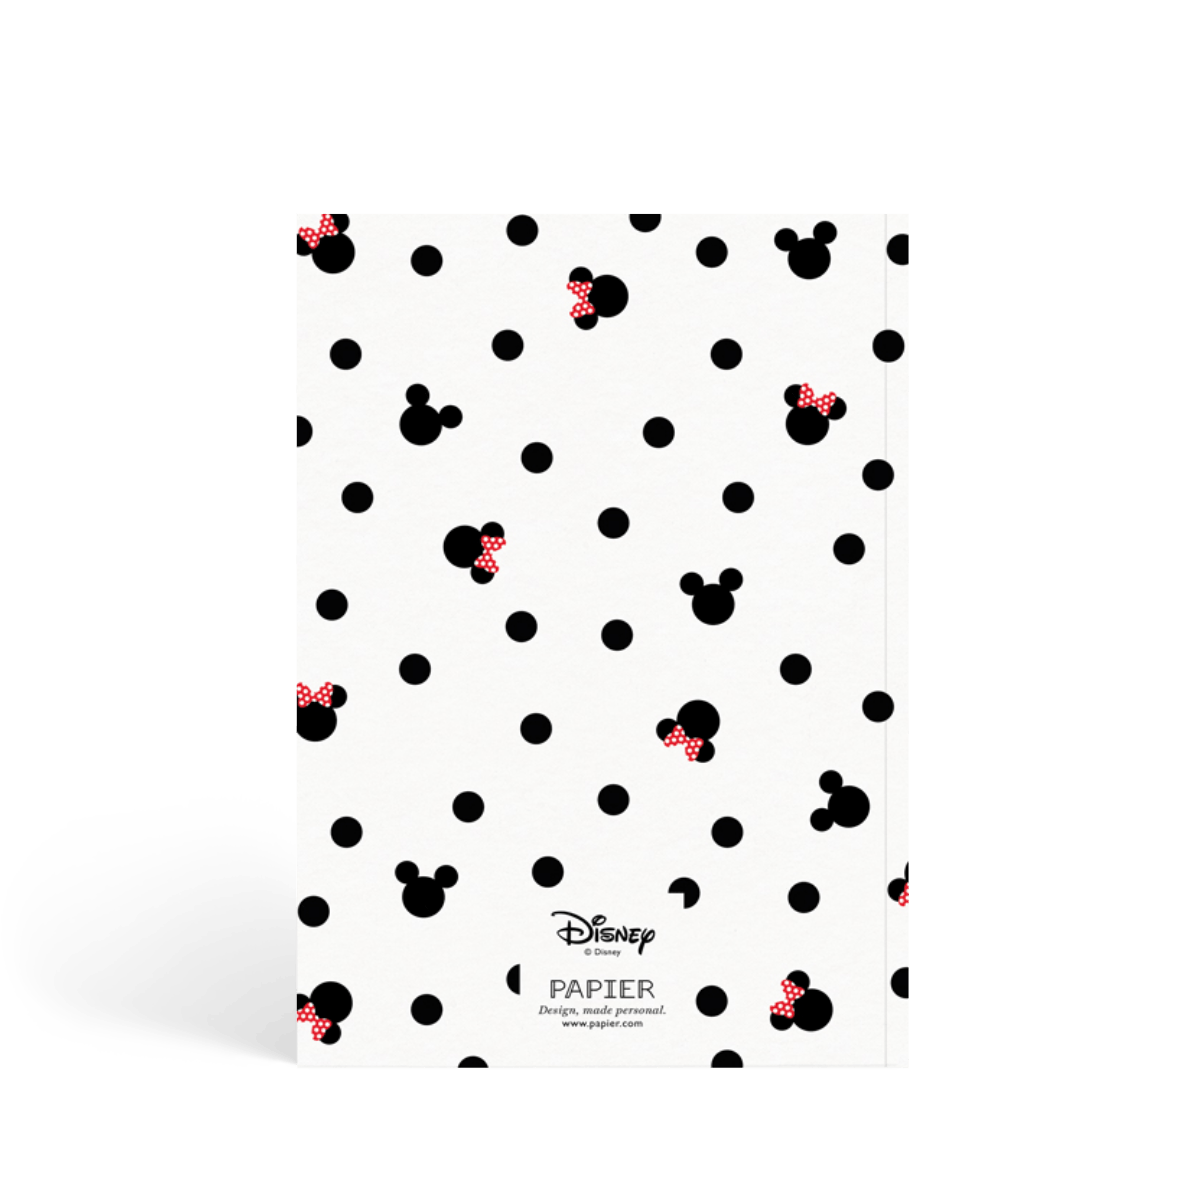 Https%3a%2f%2fwww.papier.com%2fproduct image%2f36829%2f5%2fmickey minnie mouse 9268 back 1534804367.png?ixlib=rb 1.1